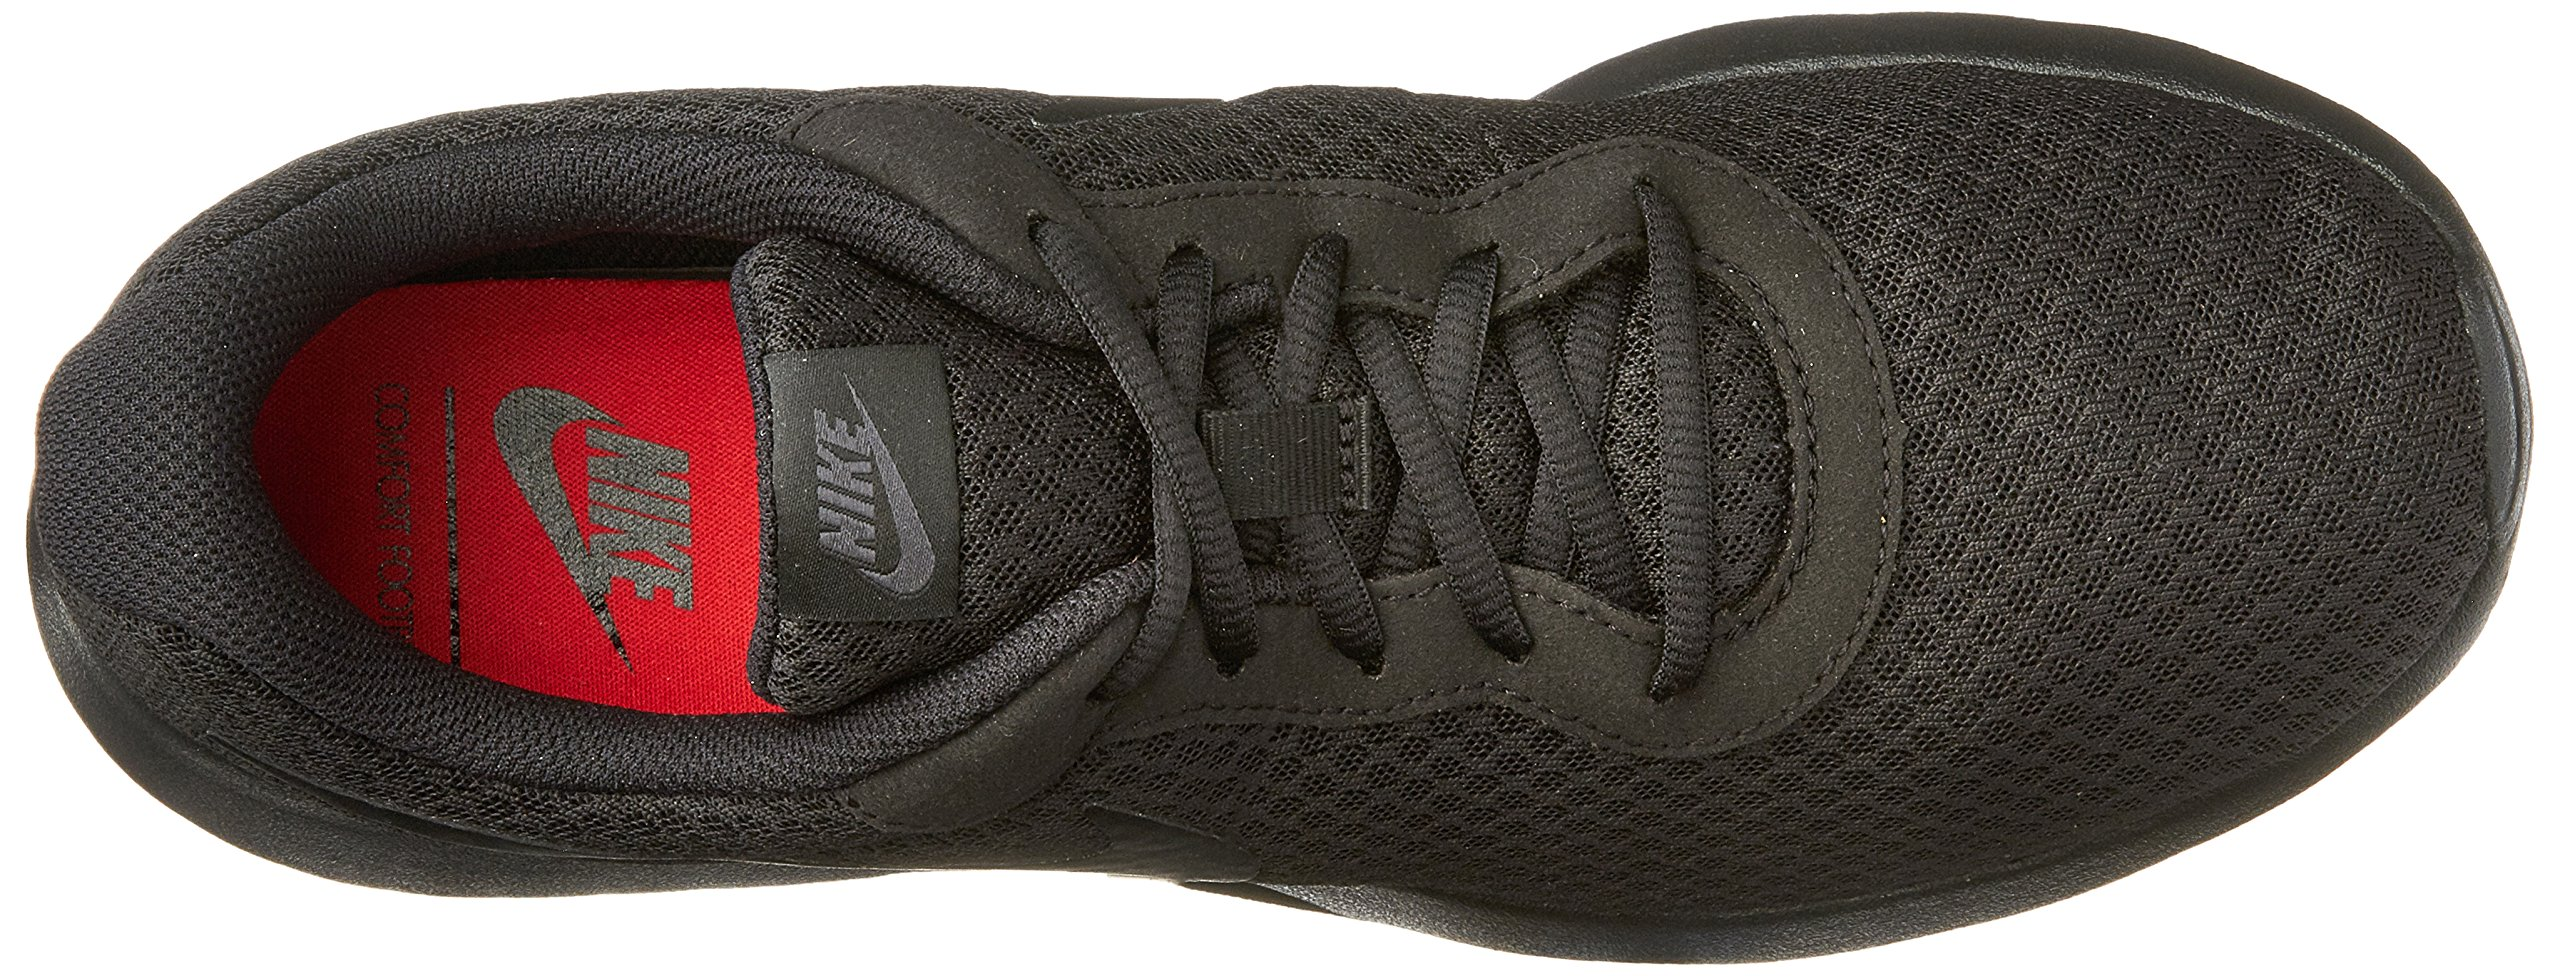 Nike Men's Tanjun Running Shoe, Black/Black/Anthracite 11